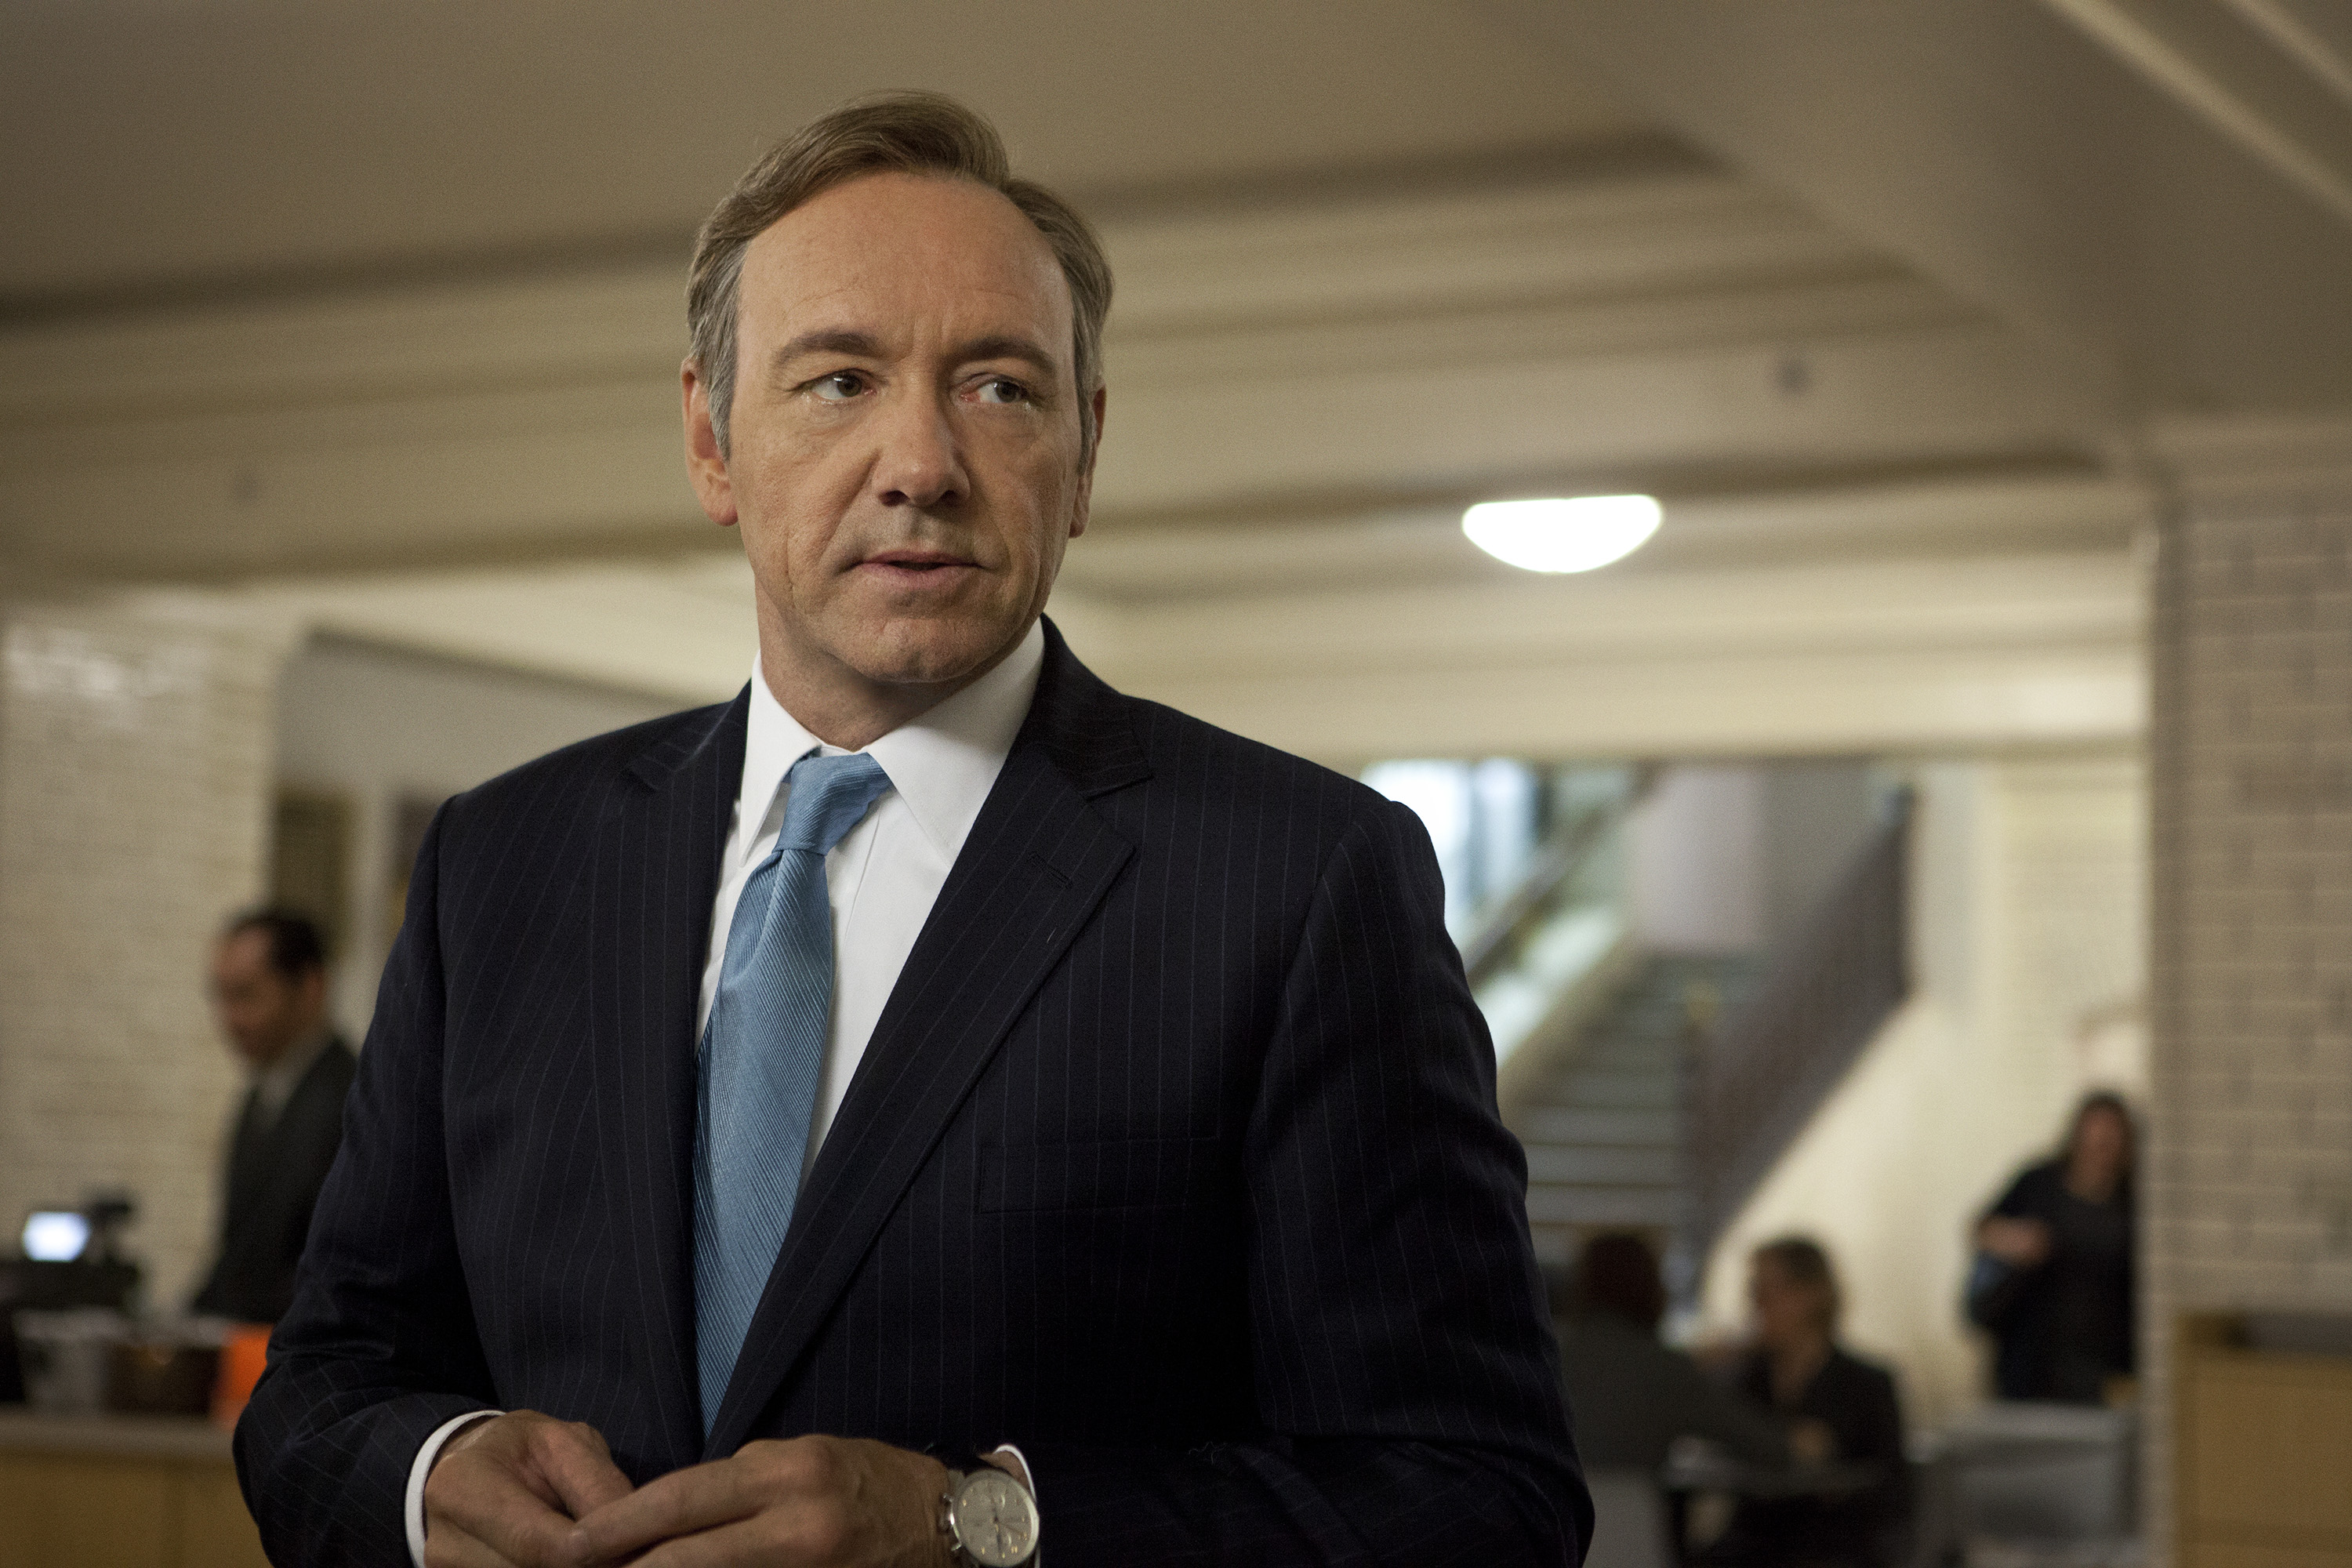 kevin spacey actor widescreen wallpaper 57566